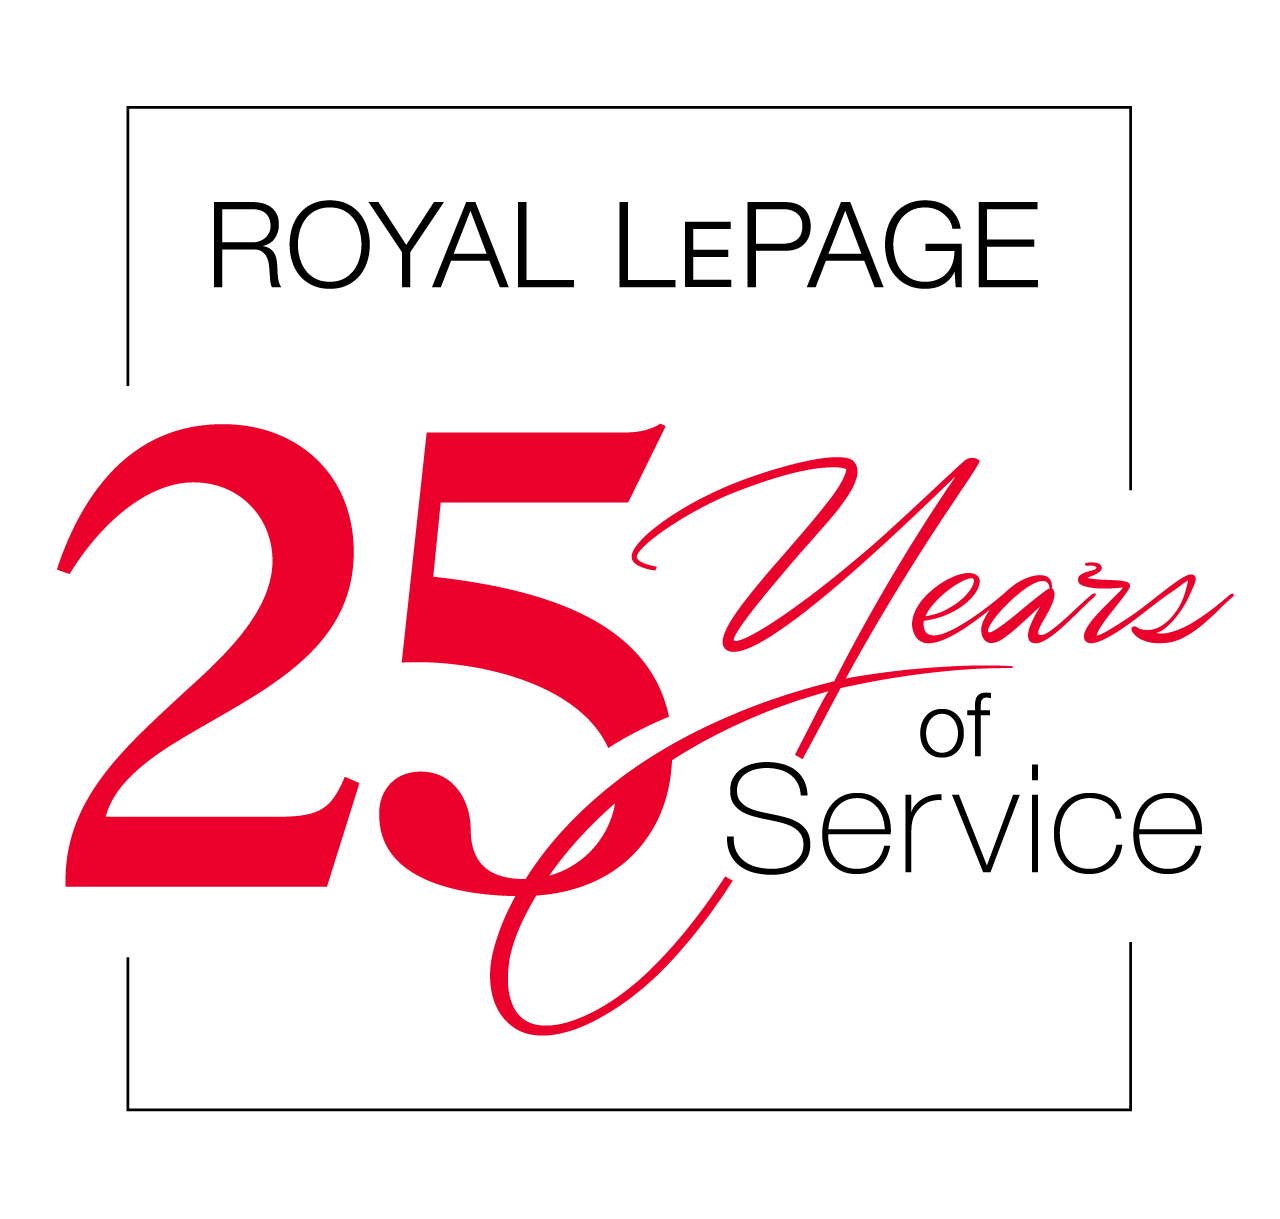 Years of Service - 25 Years